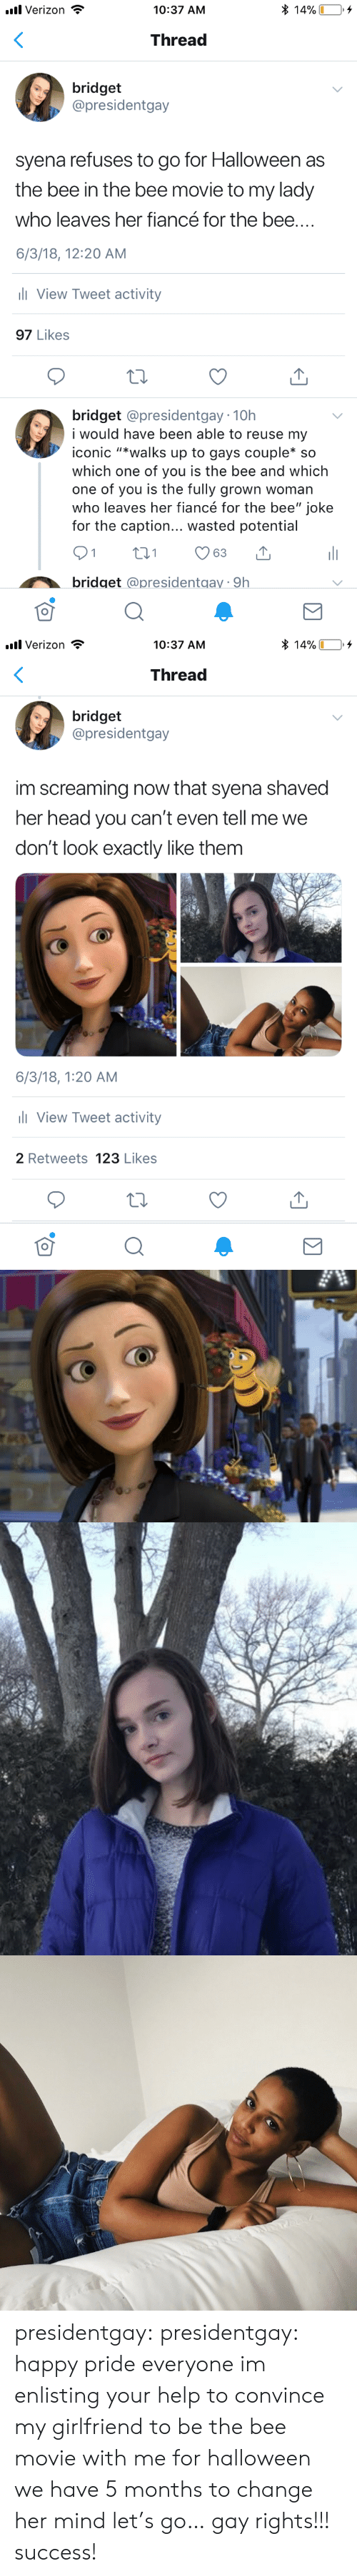 """Bee Movie, Halloween, and Head: * 14%  l Verizon  10:37 AM  Thread  bridget  @presidentgay  syena refuses to go for Halloween as  the bee in the bee movie to my lady  who leaves her fiancé for the bee....  6/3/18, 12:20 AM  ll View Tweet activity  97 Likes  bridget @presidentgay 10h  i would have be  able to reuse my  iconic """"*walks up to gays couple* so  which one of you is the bee and which  one of you is the fully grown woman  who leaves her fiancé for the bee"""" joke  for the caption... wasted potential  21  t1  63  bridget @presidentgay 9h   l Verizon  * 14%  10:37 AM  Thread  bridget  @presidentgay  im screaming now that syena shaved  her head you can't even tell me we  don't look exactly like them  6/3/18, 1:20 AM  l View Tweet activity  2 Retweets 123 Likes presidentgay:  presidentgay: happy pride everyone im enlisting your help to convince my girlfriend to be the bee movie with me for halloween we have 5 months to change her mind let's go… gay rights!!! success!"""